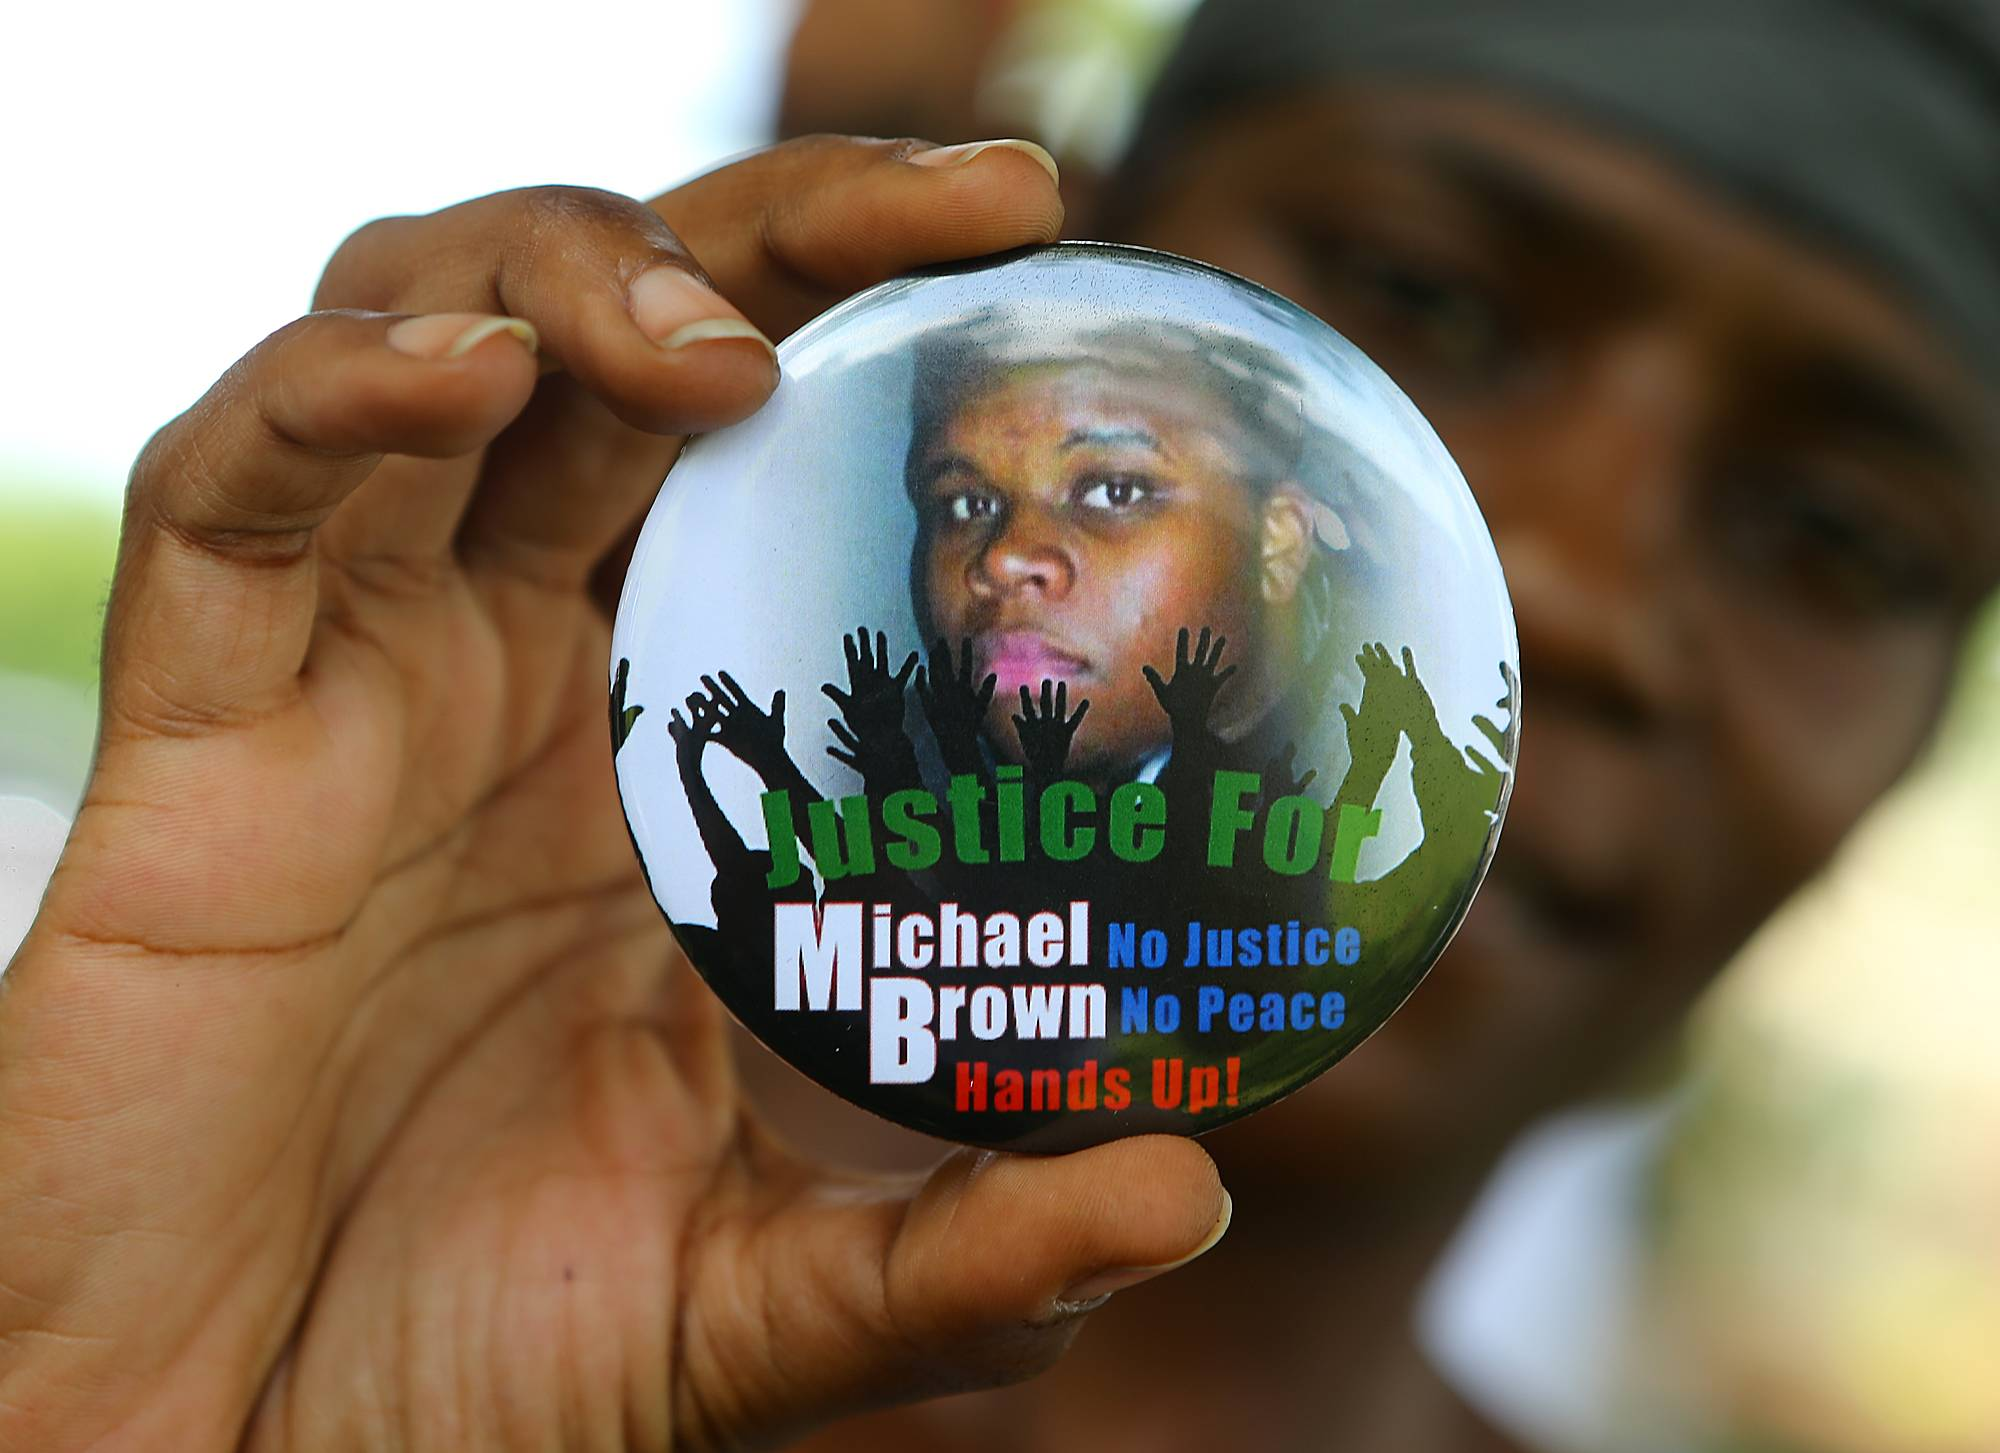 By almost all accounts, Michael Brown was engaged in some sort of physical struggle with Ferguson police Officer Darren Wilson just moments before he was fatally shot. But witnesses sometimes related confused, changing, contradictory or simply physically impossible accounts of what they saw.